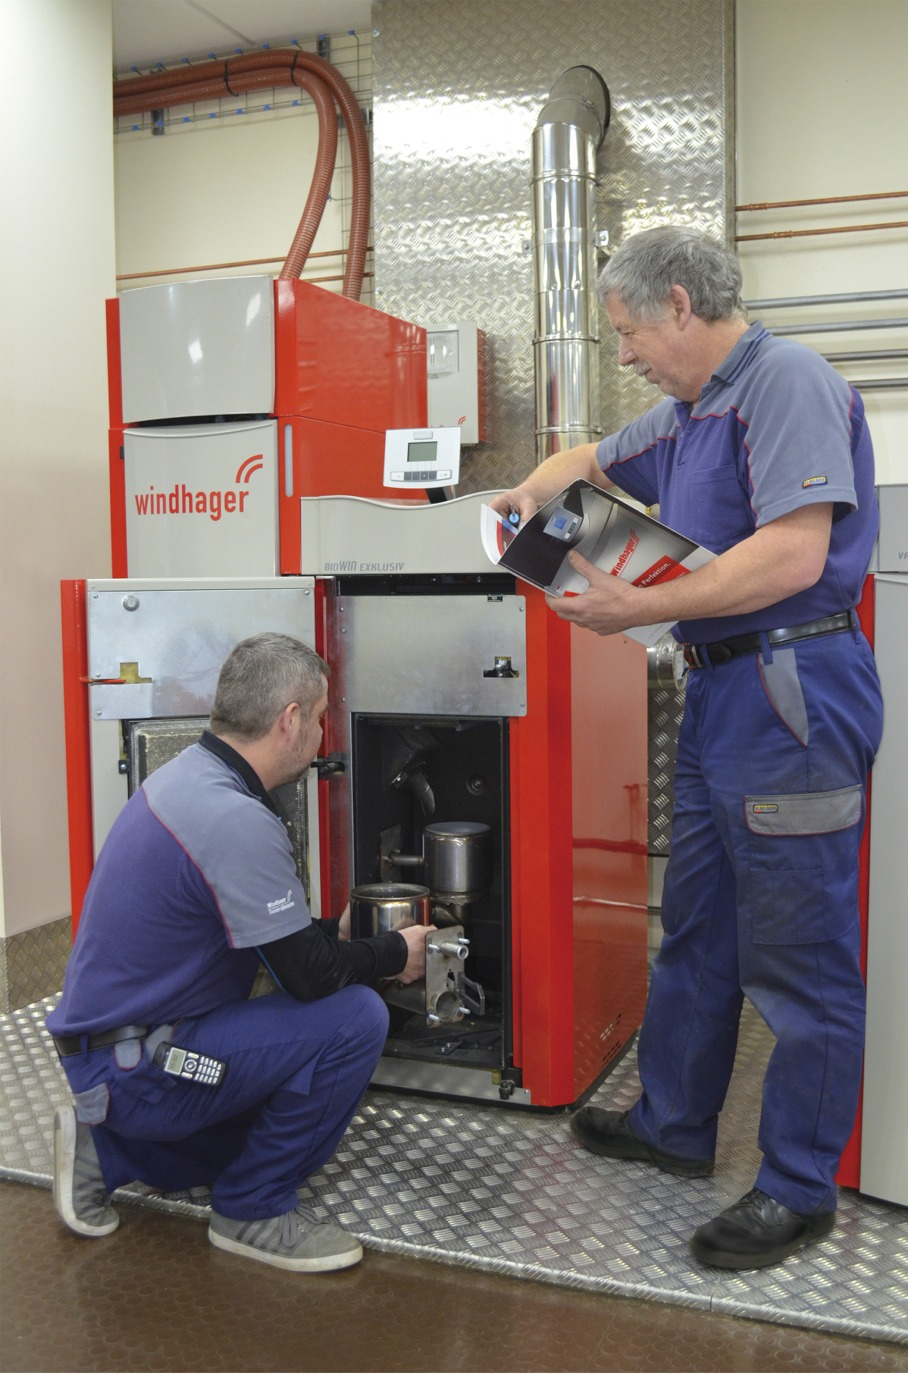 biomass boilers, renewable energy client, training centre, this and HETAS course promoted in the press